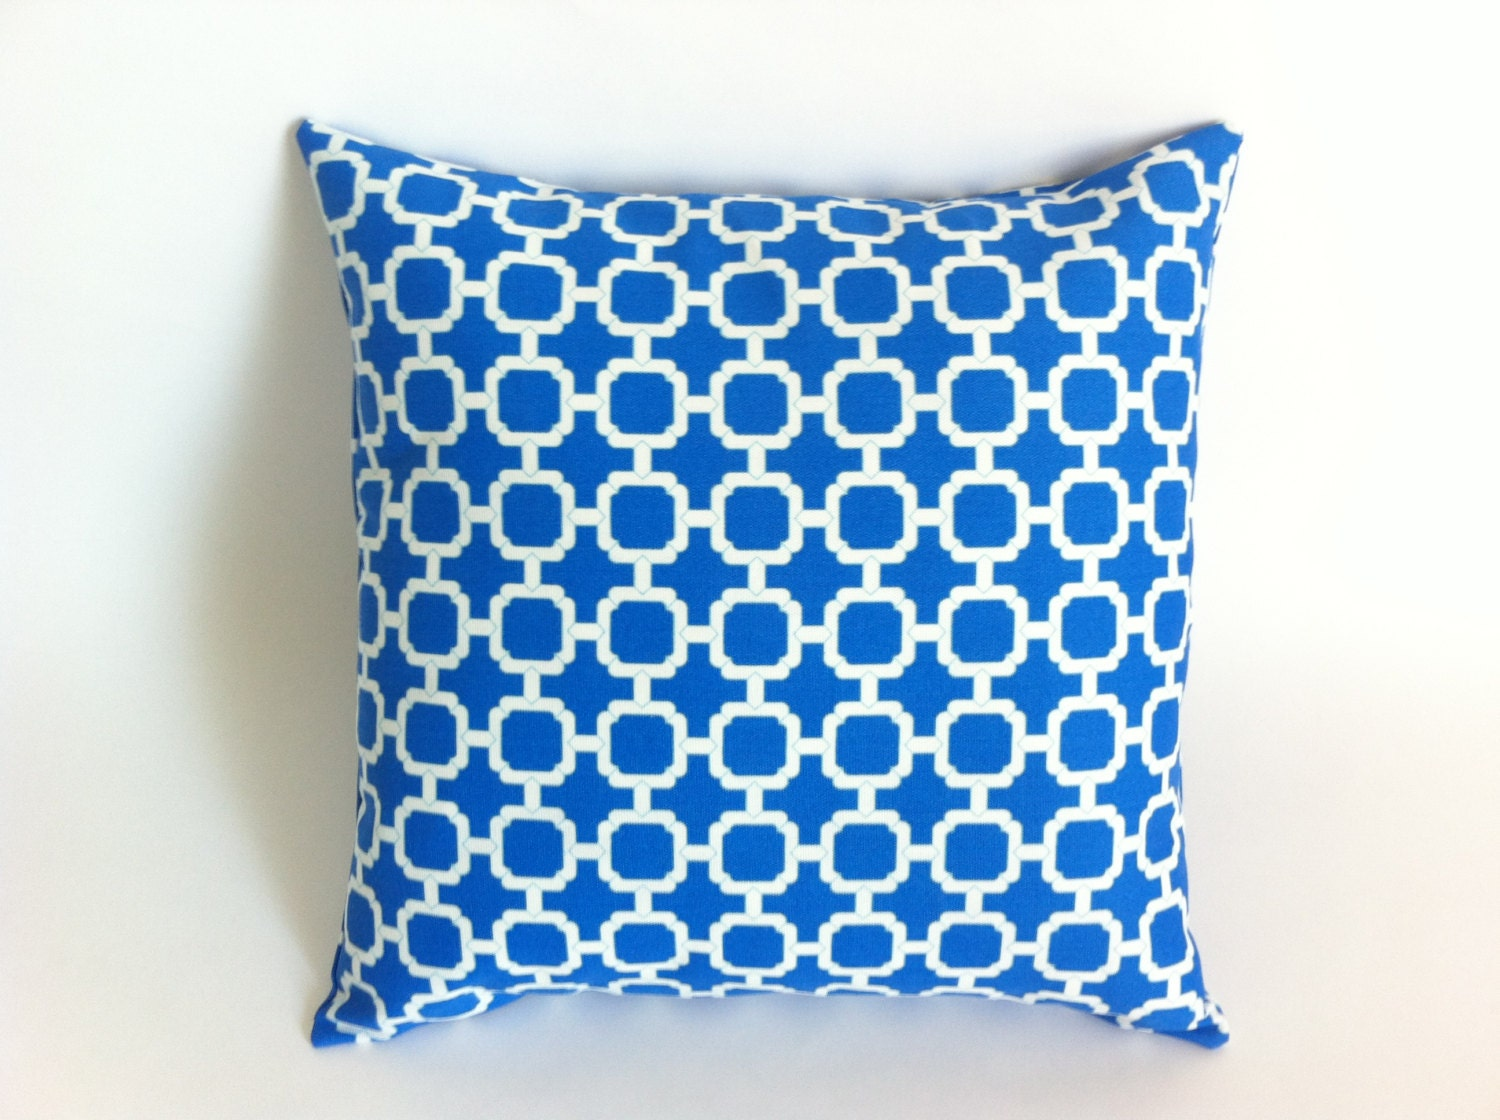 Bright Cobalt Blue Pillow Decorative Throw Pillow by Pillomatic